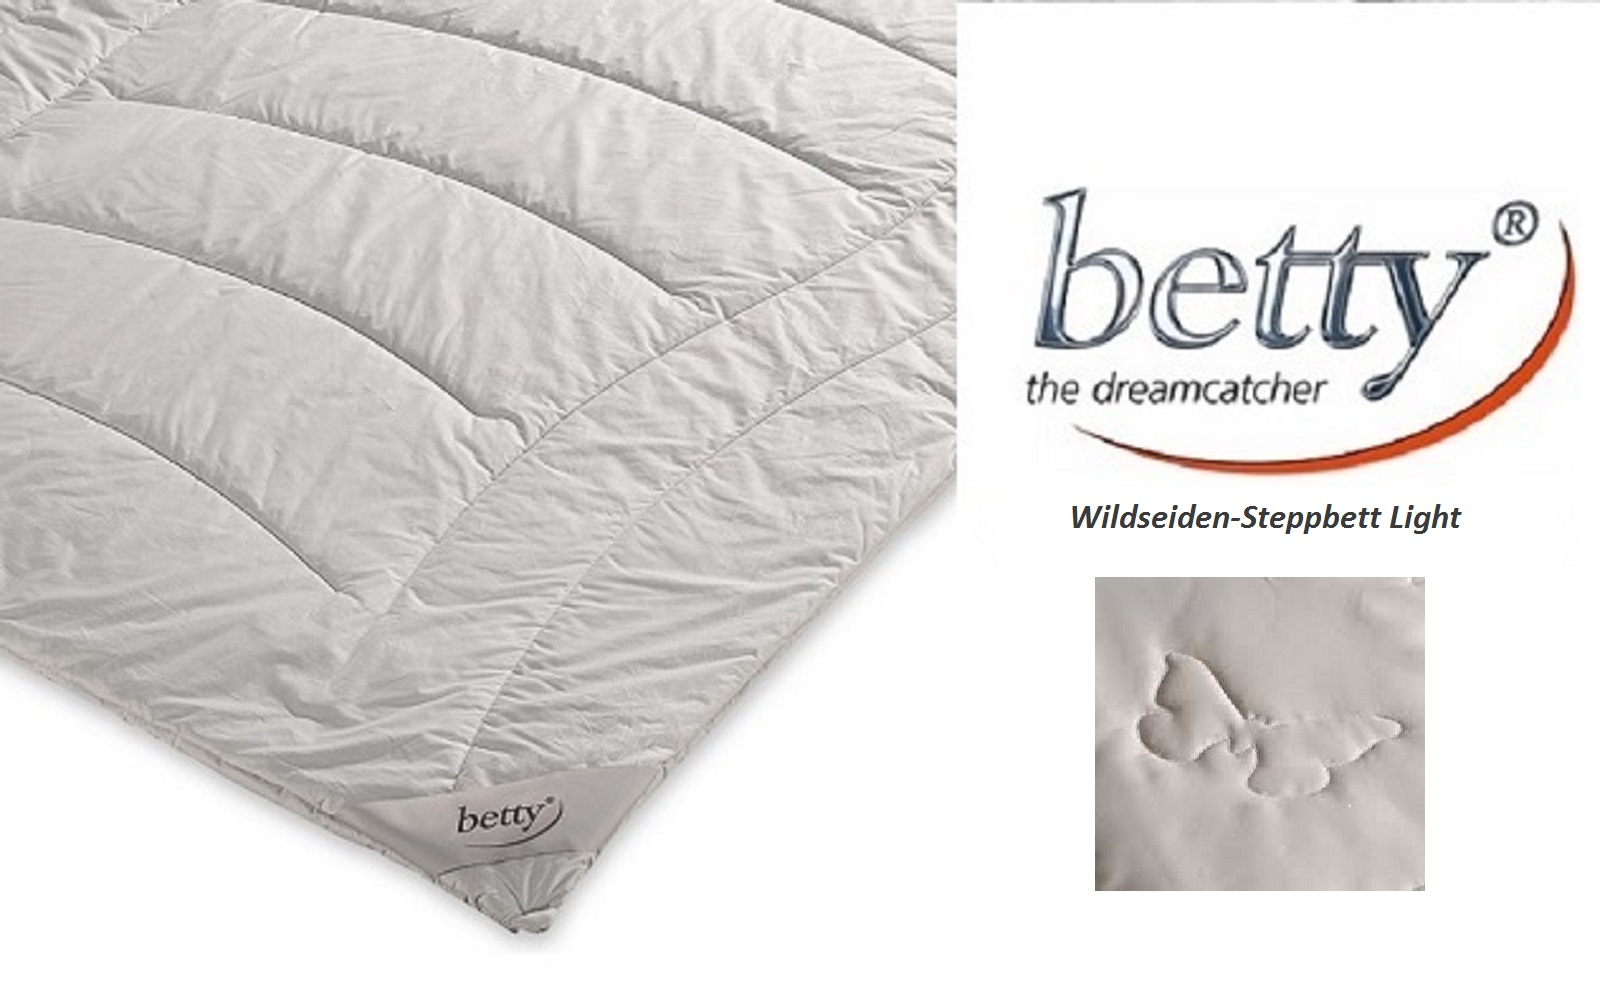 betty silk Wildseiden-Steppbett Light 240x220